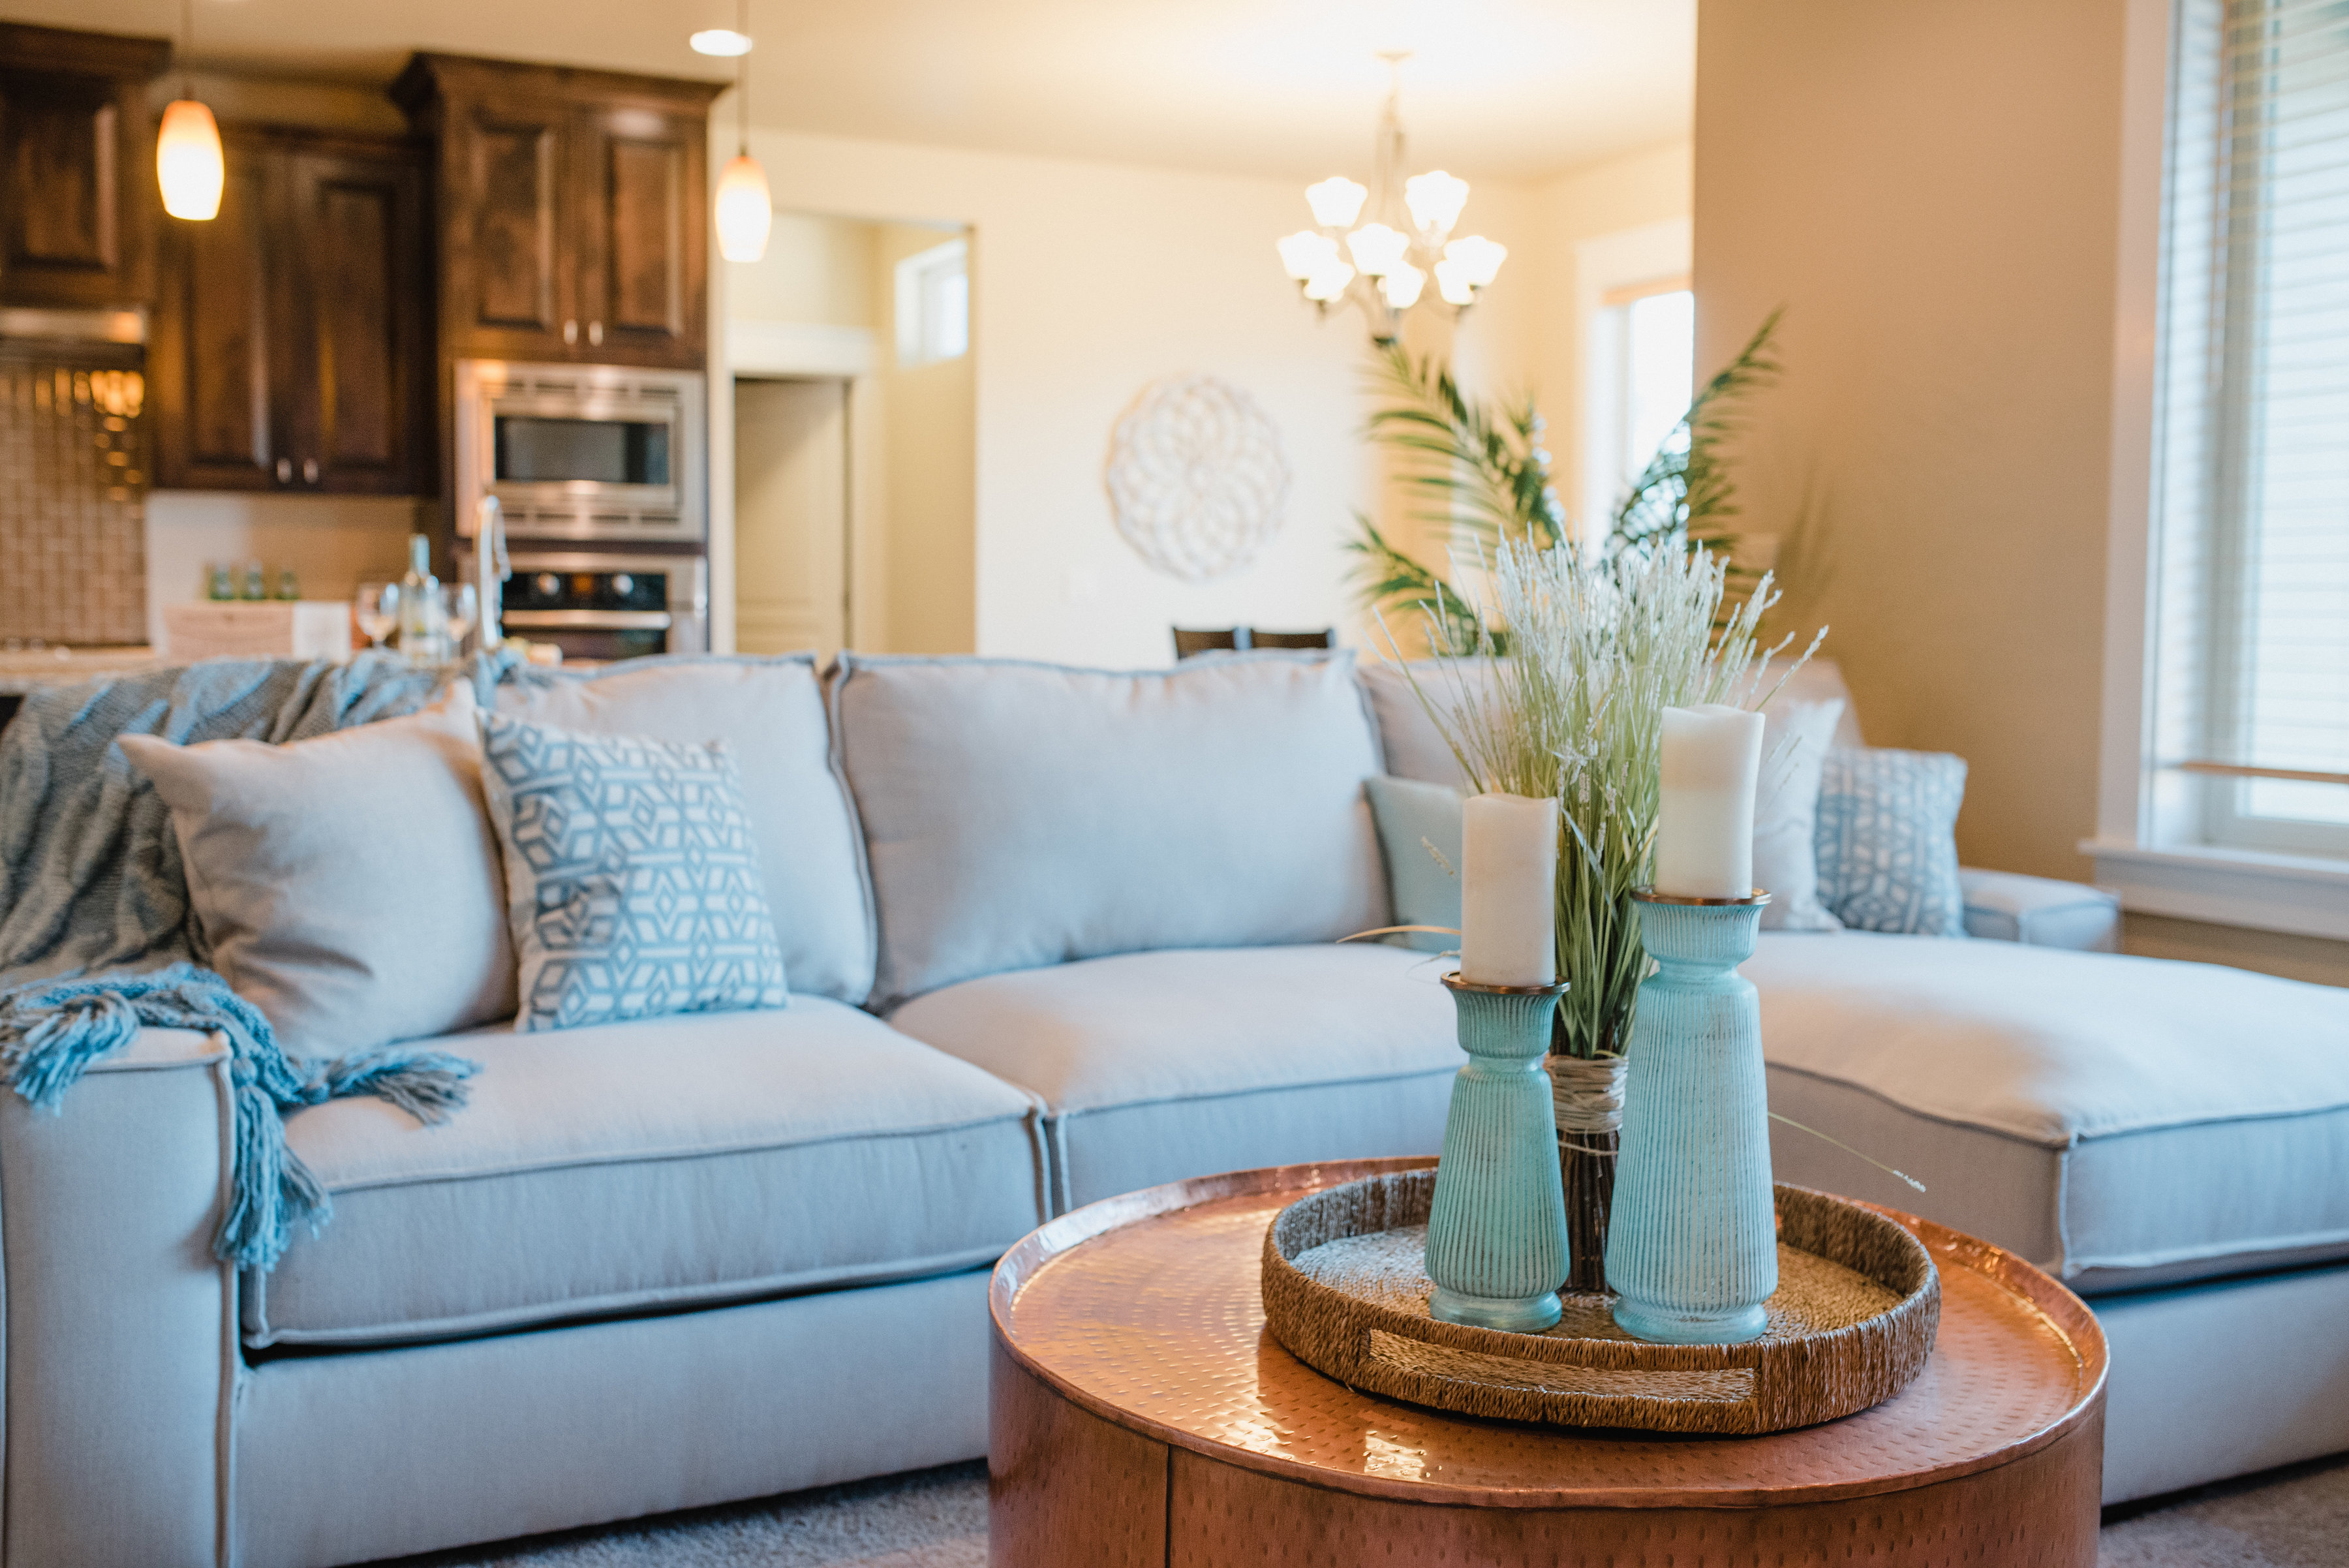 Awesome White Linen Home Staging Boise Idaho Download Free Architecture Designs Itiscsunscenecom